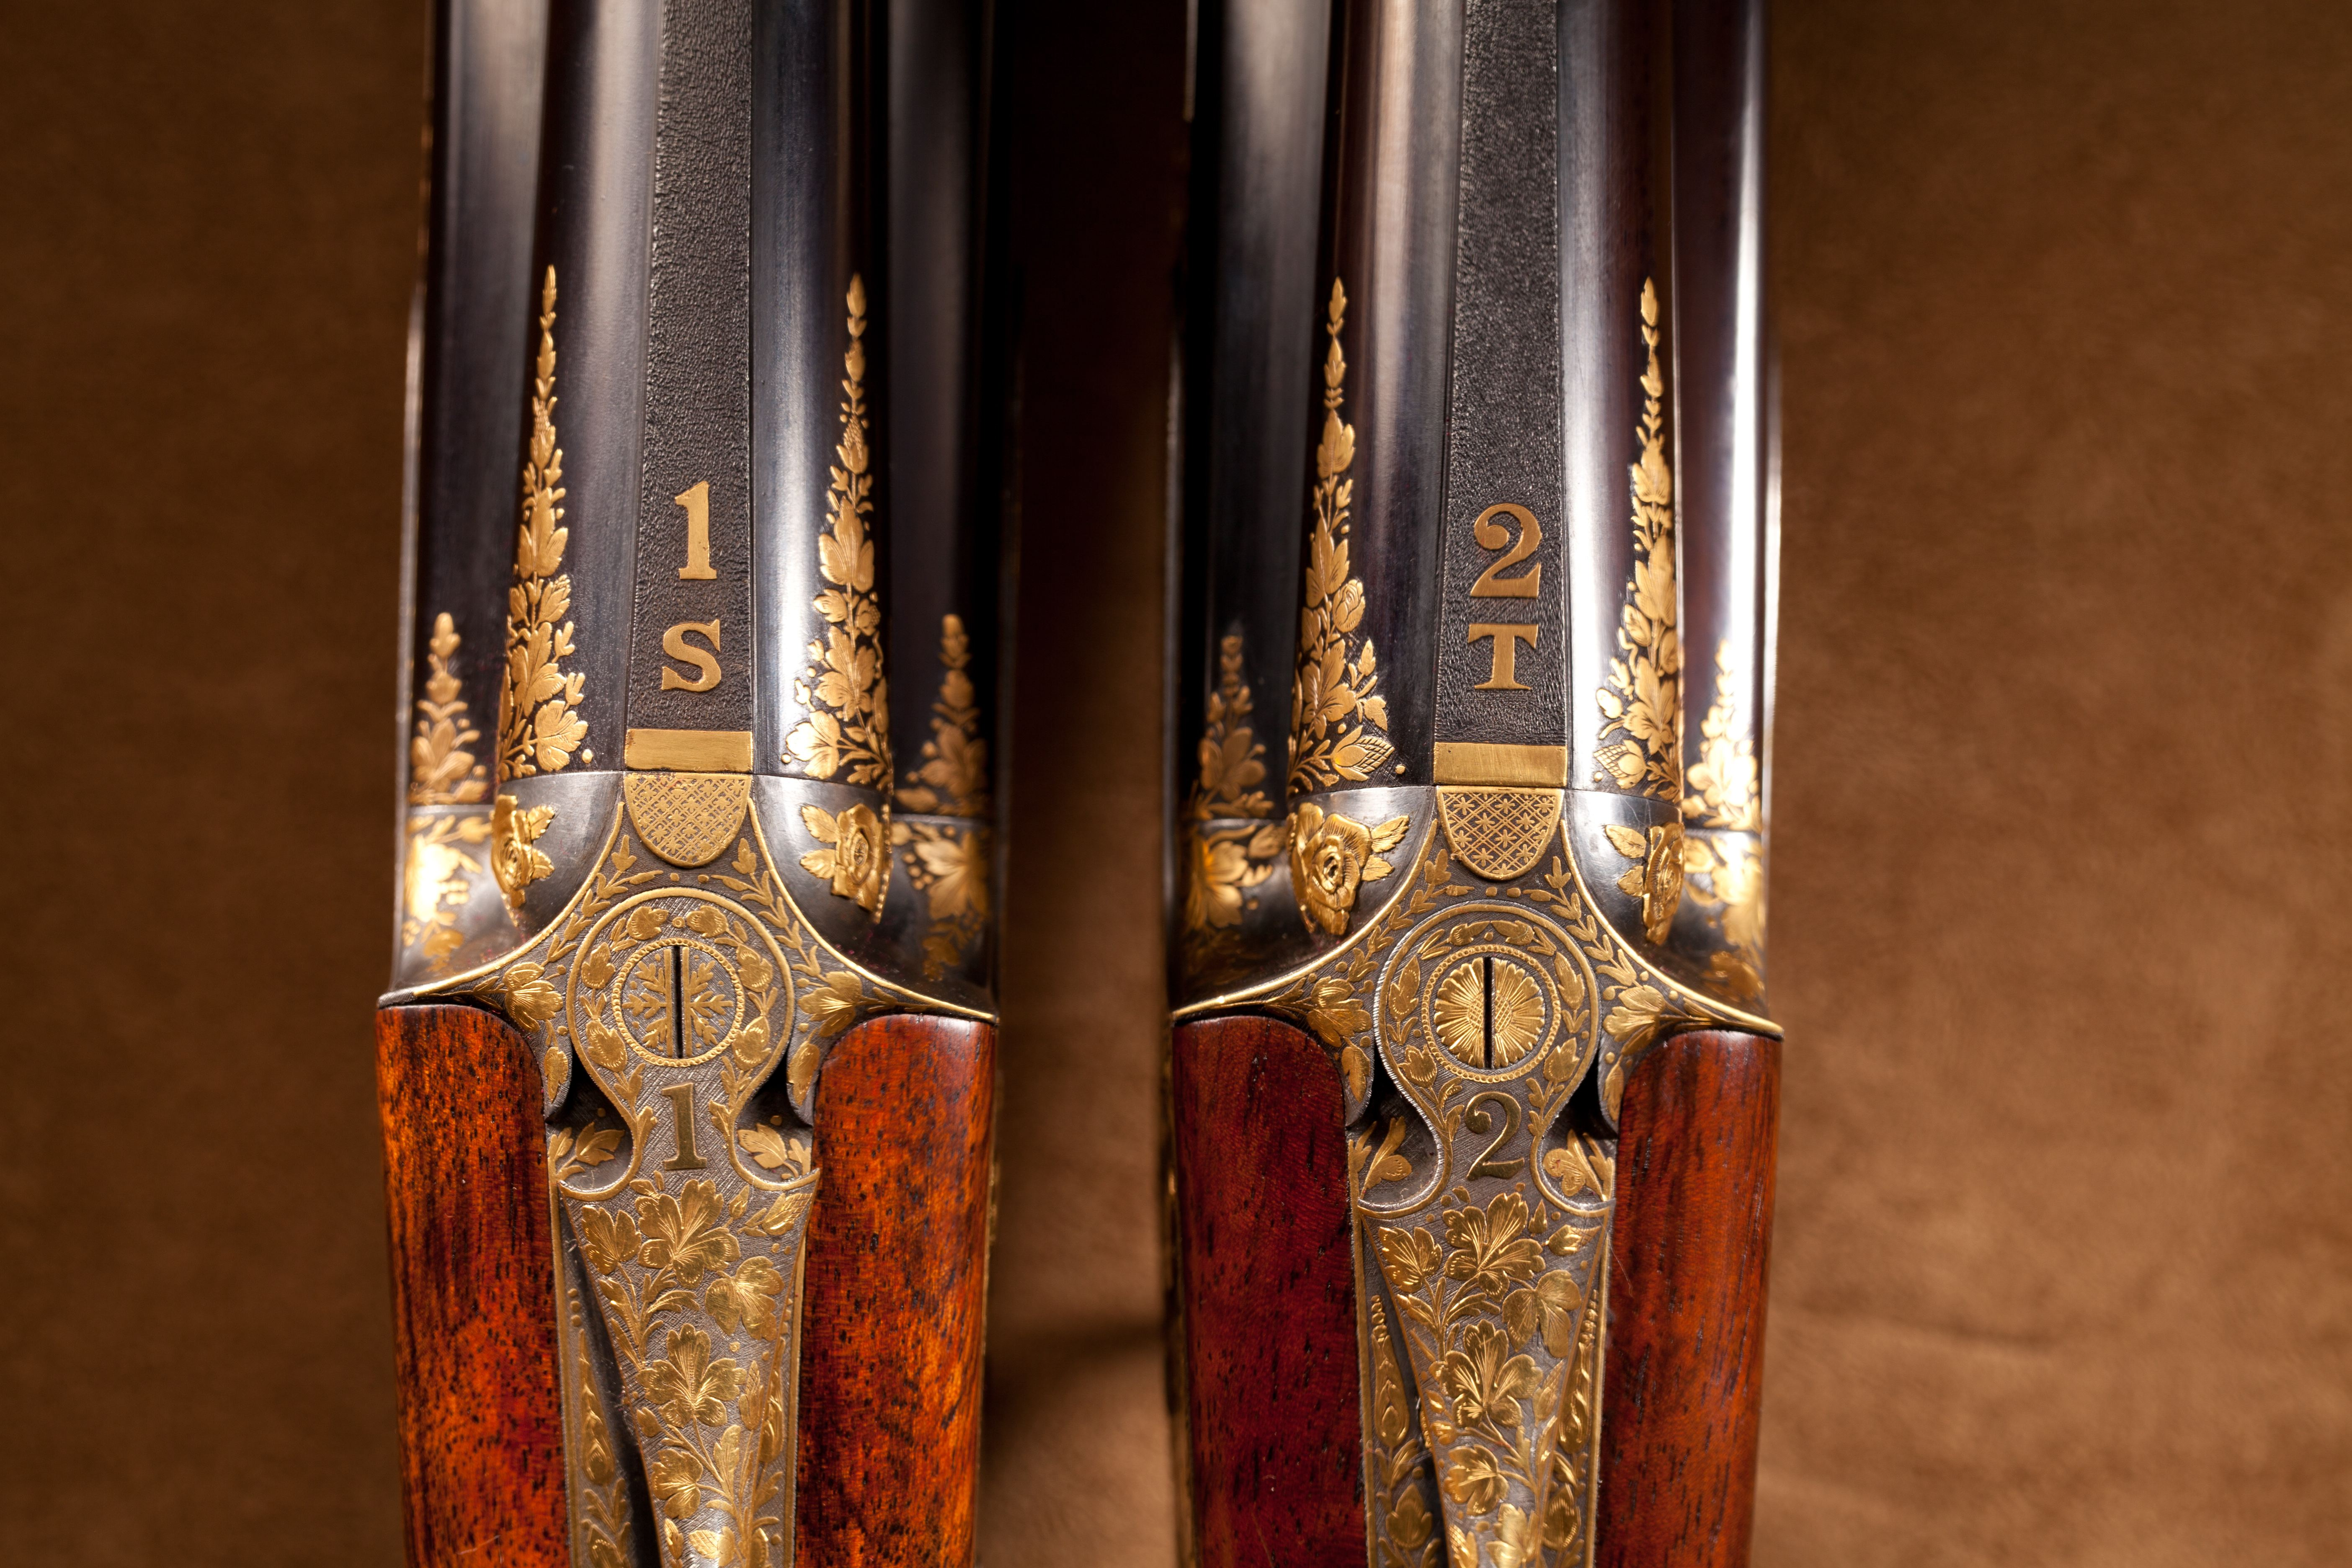 Pair of Purdey Over-Under Shotguns - 12 ga.